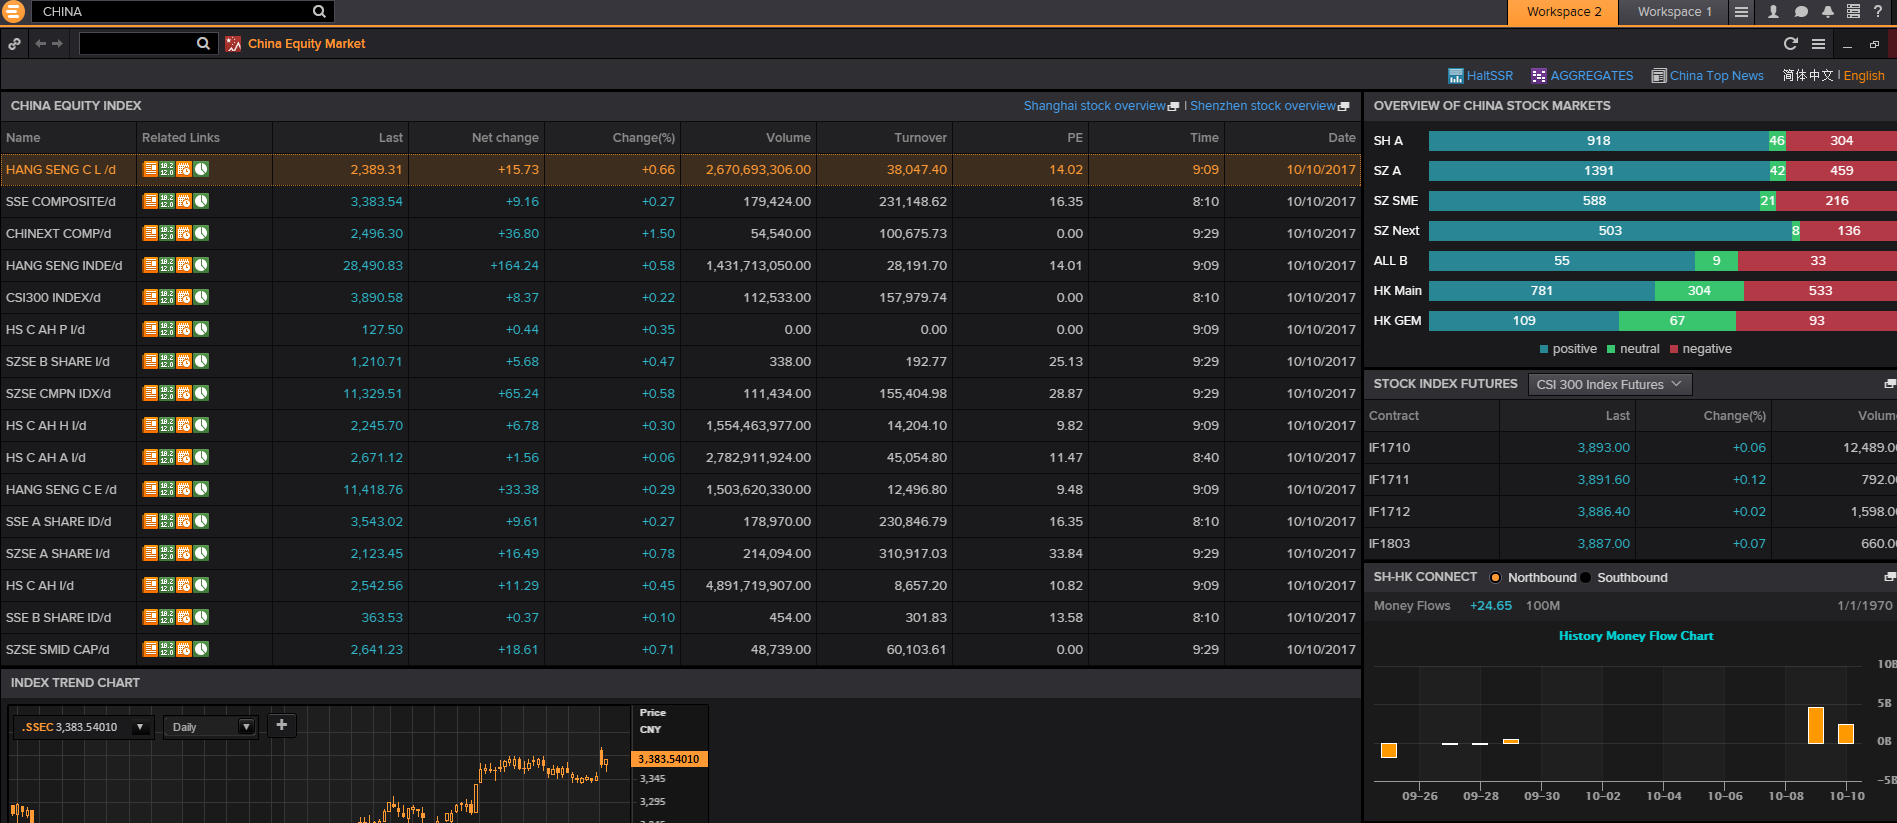 Screenshot of Eikon Chinese equity market data